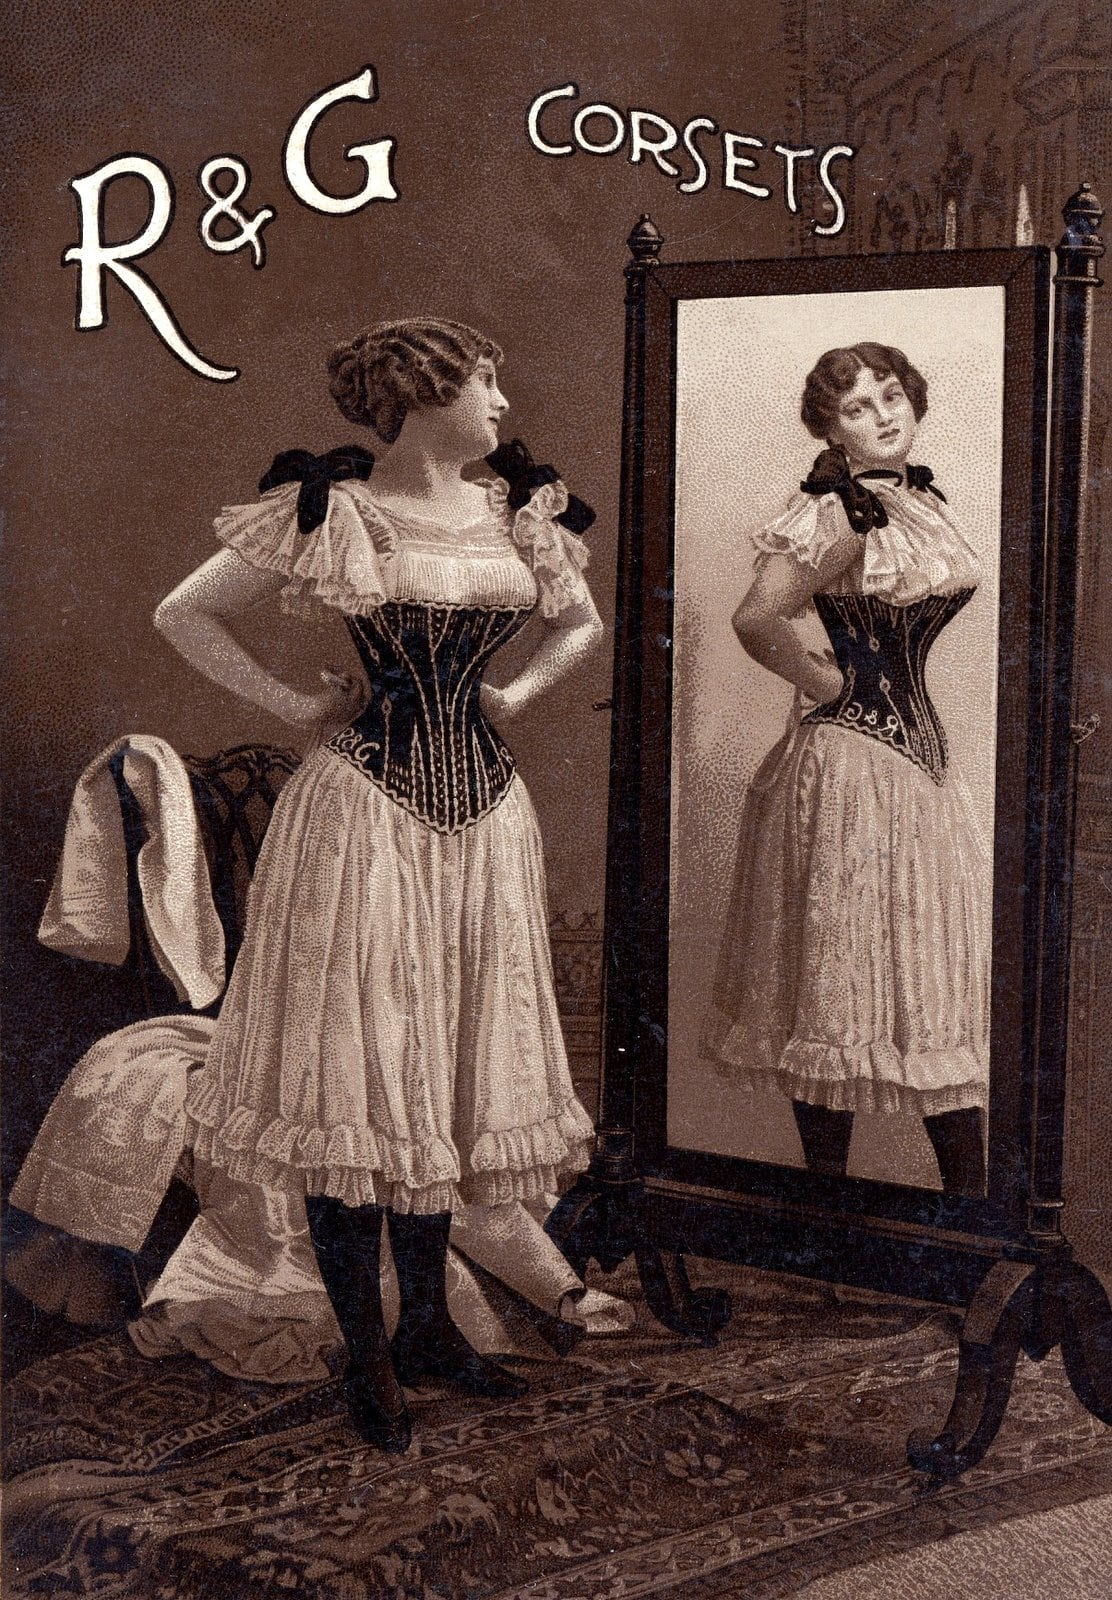 R and G vintage corsets from 1800s